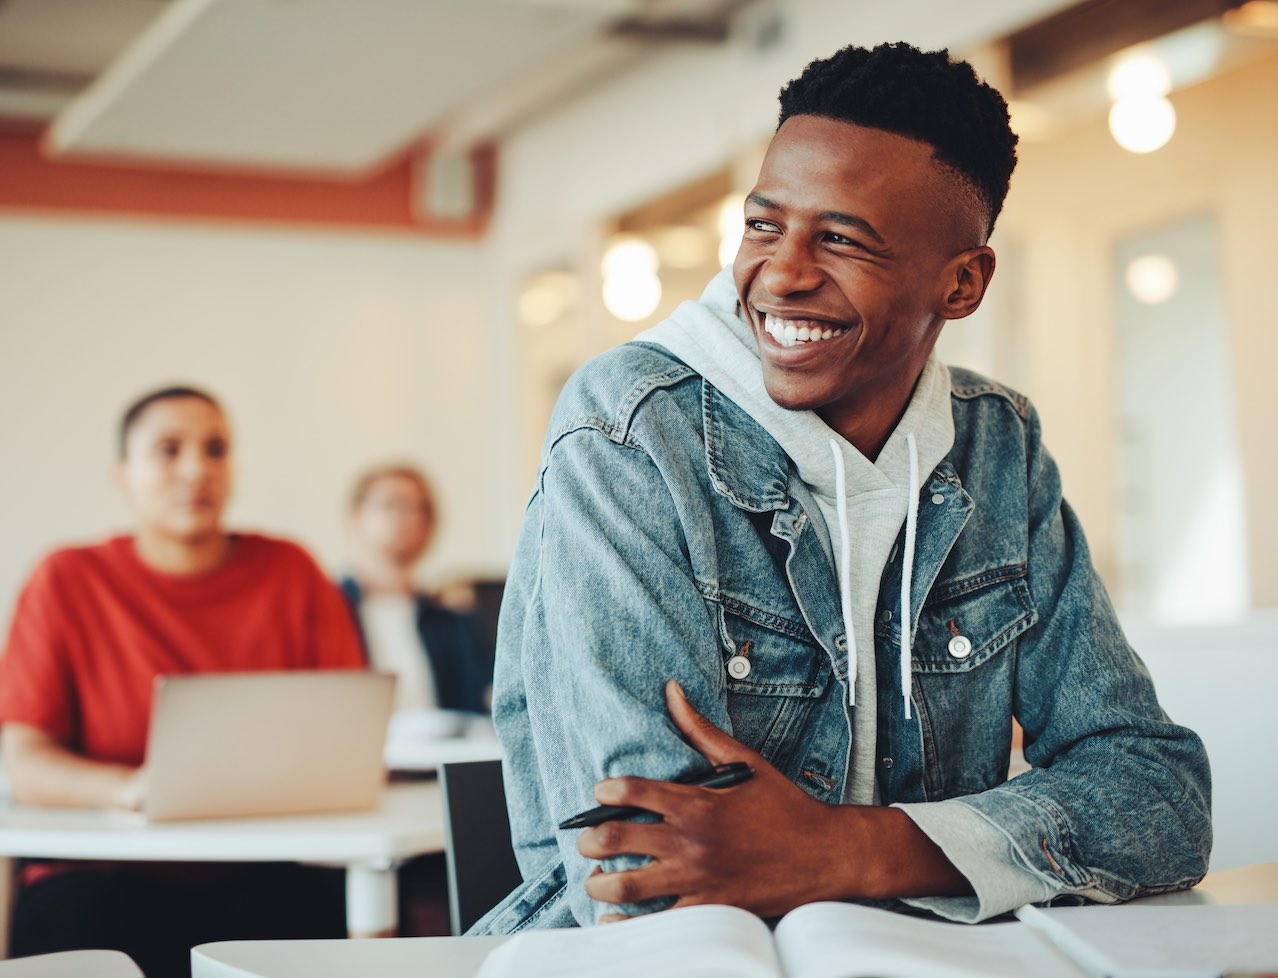 Image shows a smiling student in a classroom setting